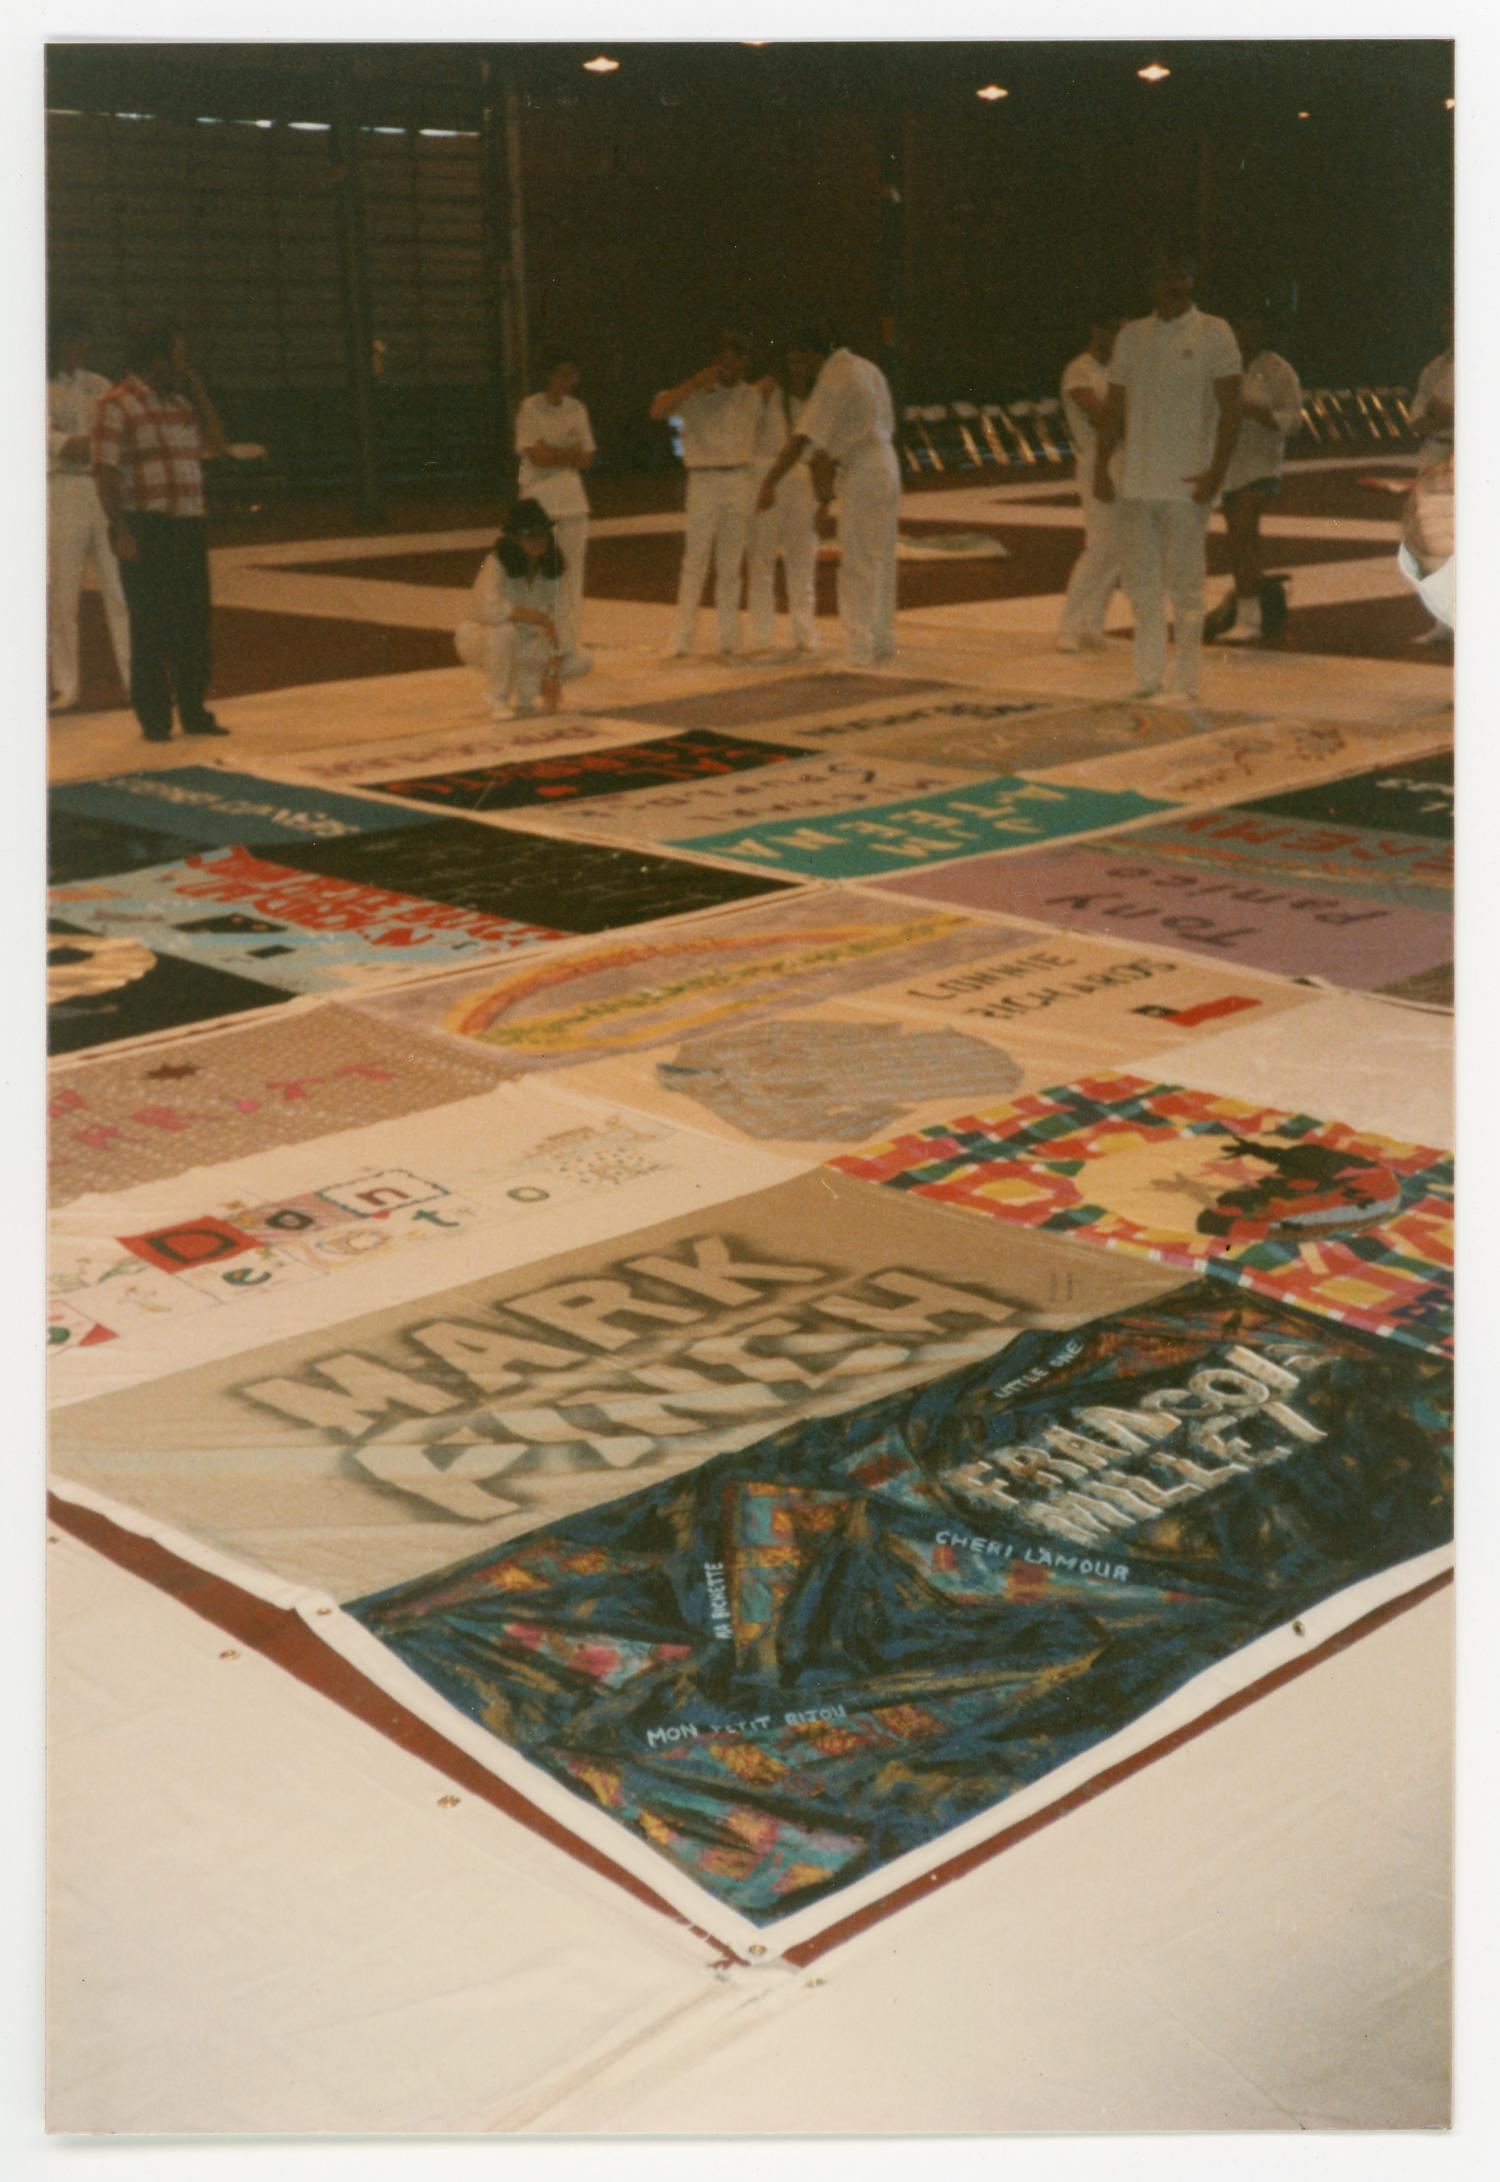 [Viewing and Discussing of the AIDS Memorial Quilts]                                                                                                      [Sequence #]: 1 of 2